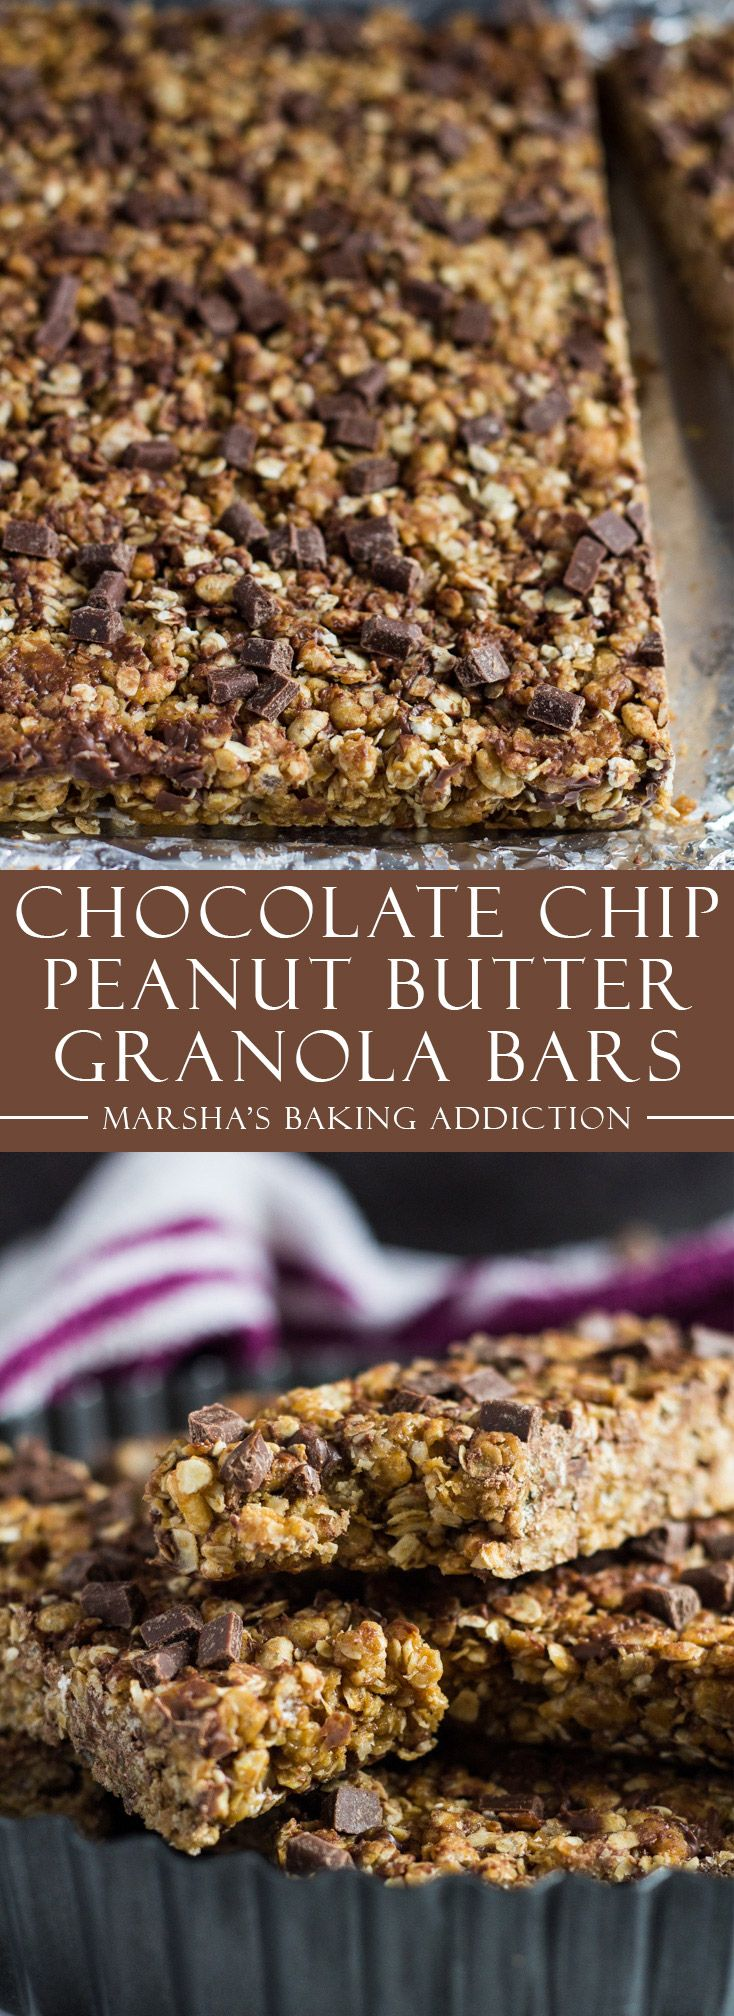 No-Bake+Chocolate+Chip+Peanut+Butter+Granola+Bars+|+marshasbakingaddiction.com+@marshasbakeblog